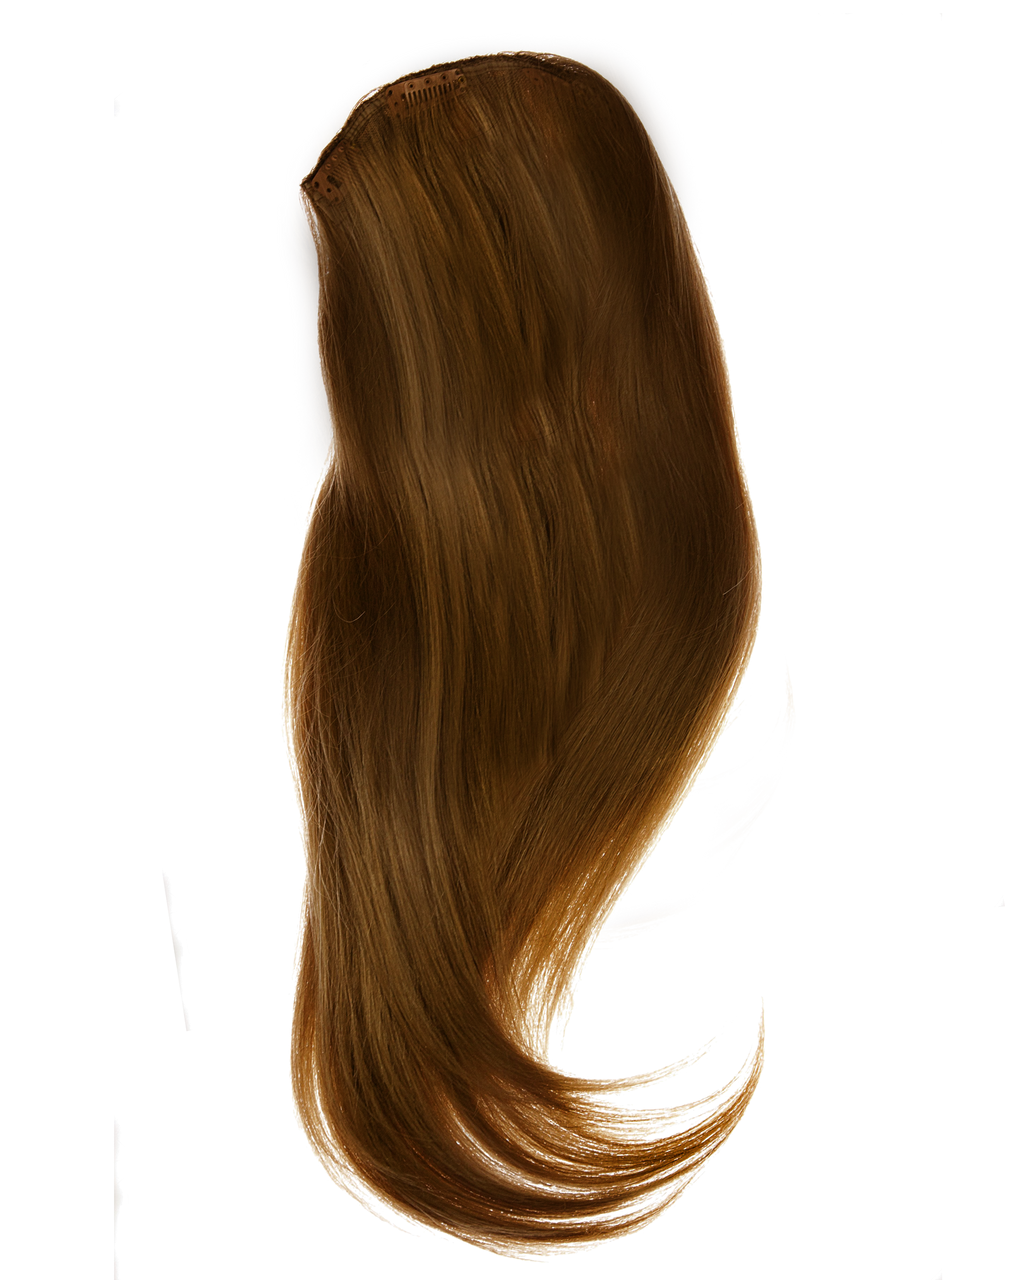 Hairstyle Png : png_hair_by_moonglowlilly-d5n4xex.png